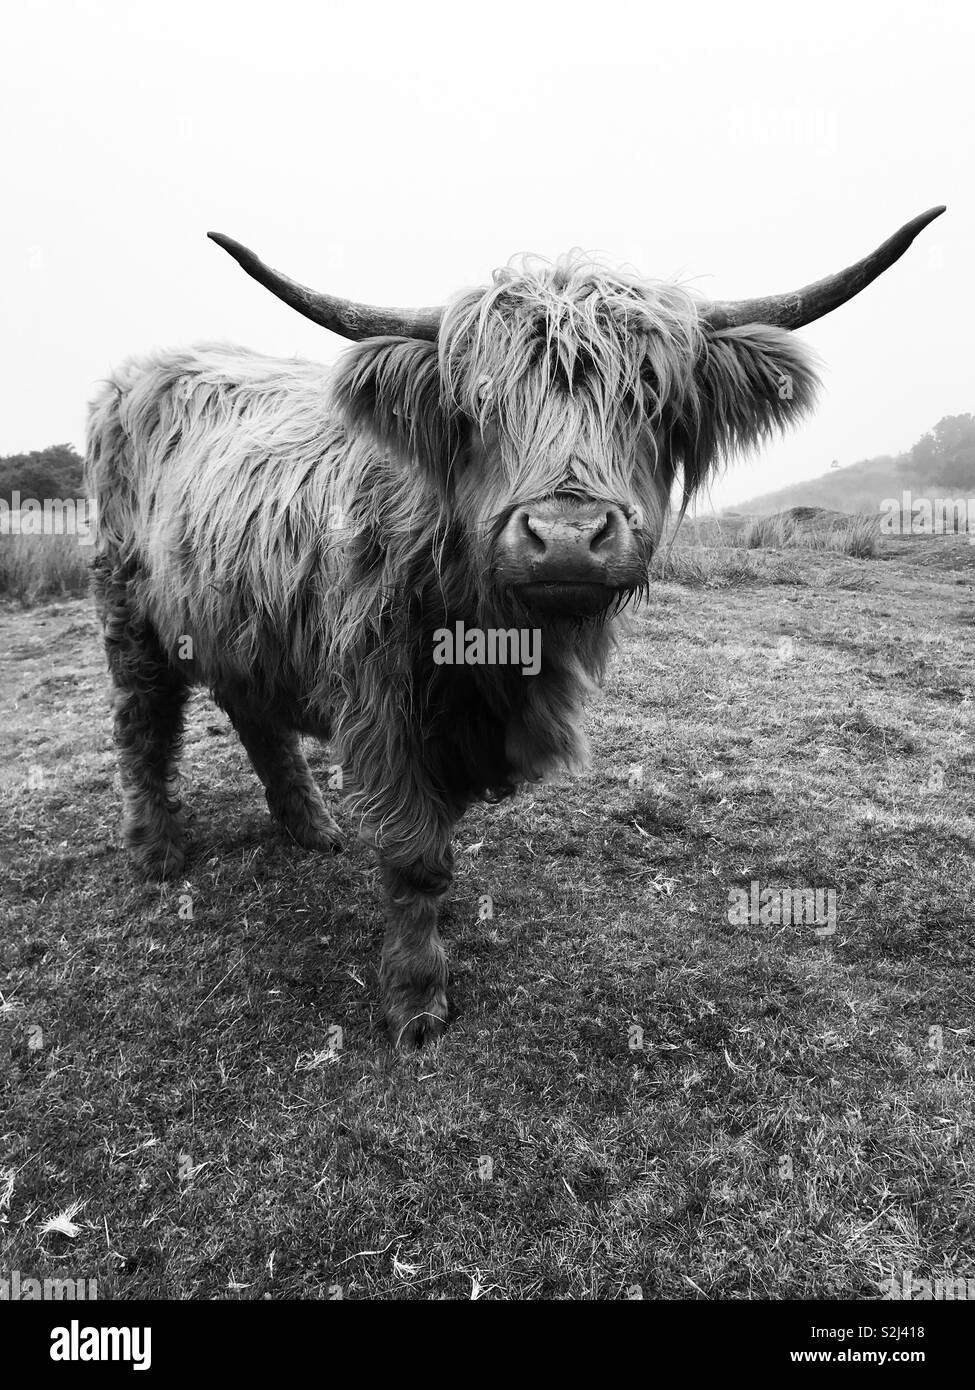 Longhorn cow black and white stock photos images alamy